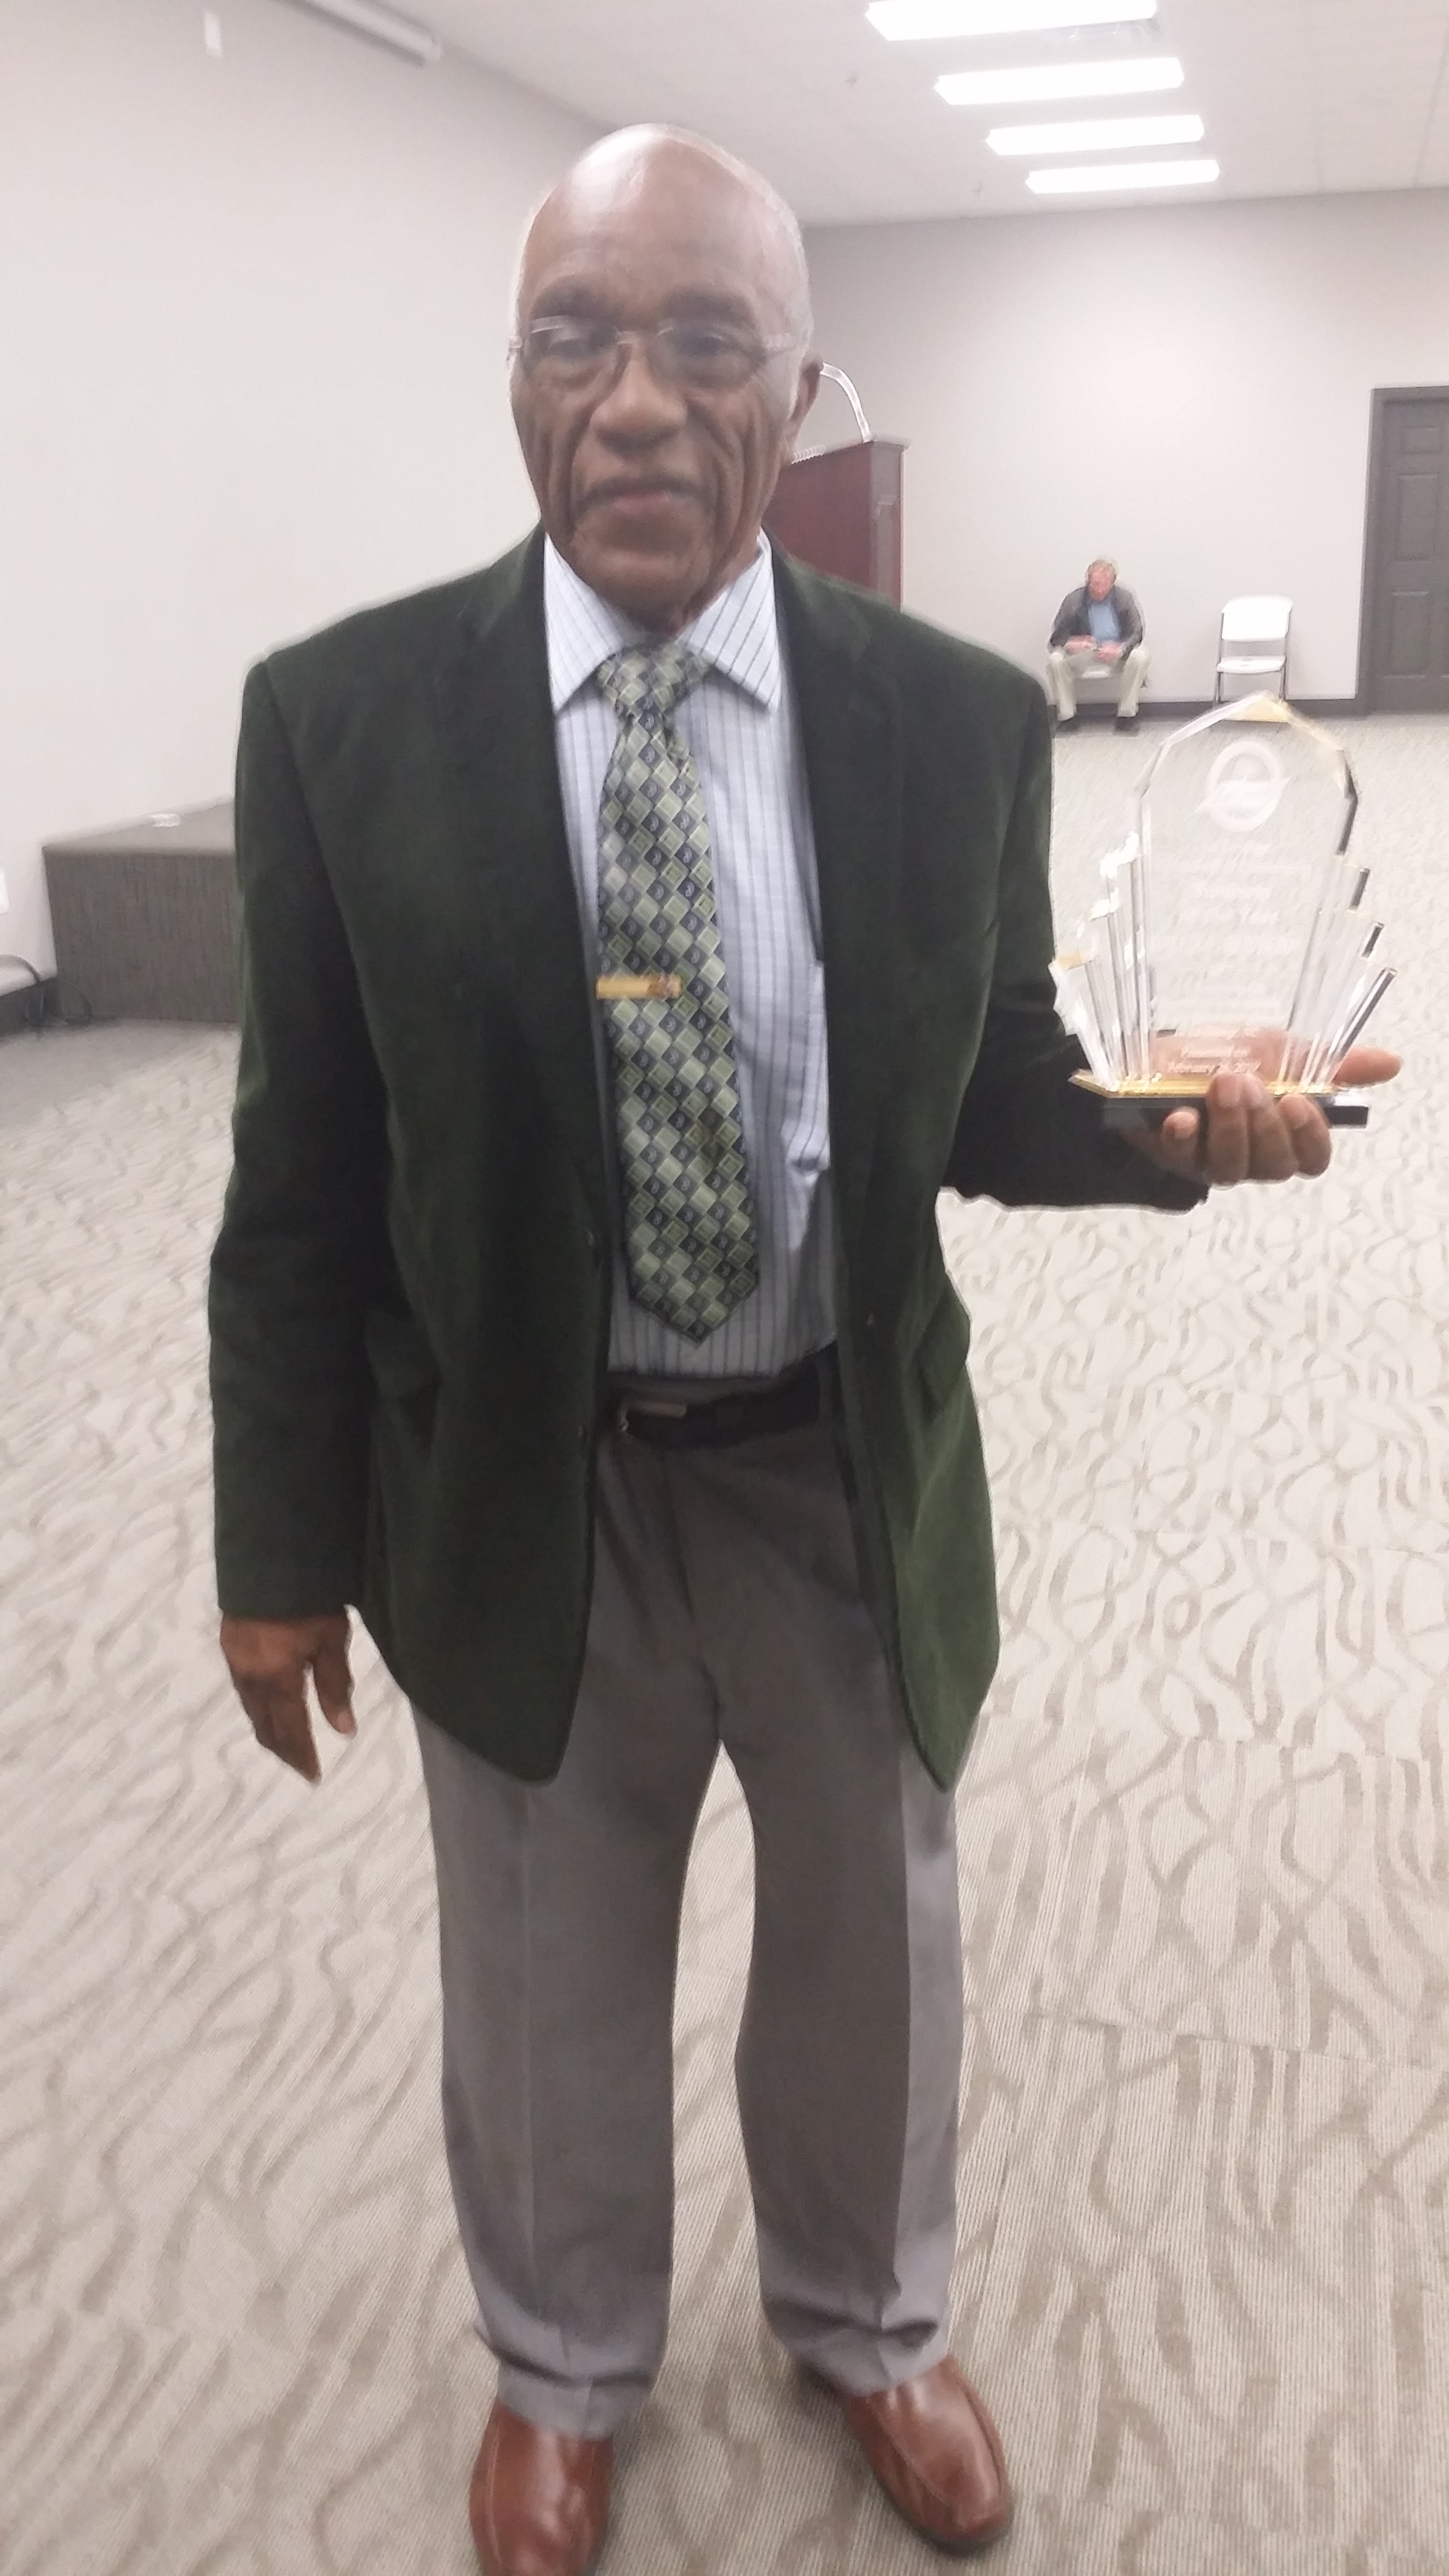 La Grange Chamber of Commerce Small Business of the Year owner Cornell Mewborn